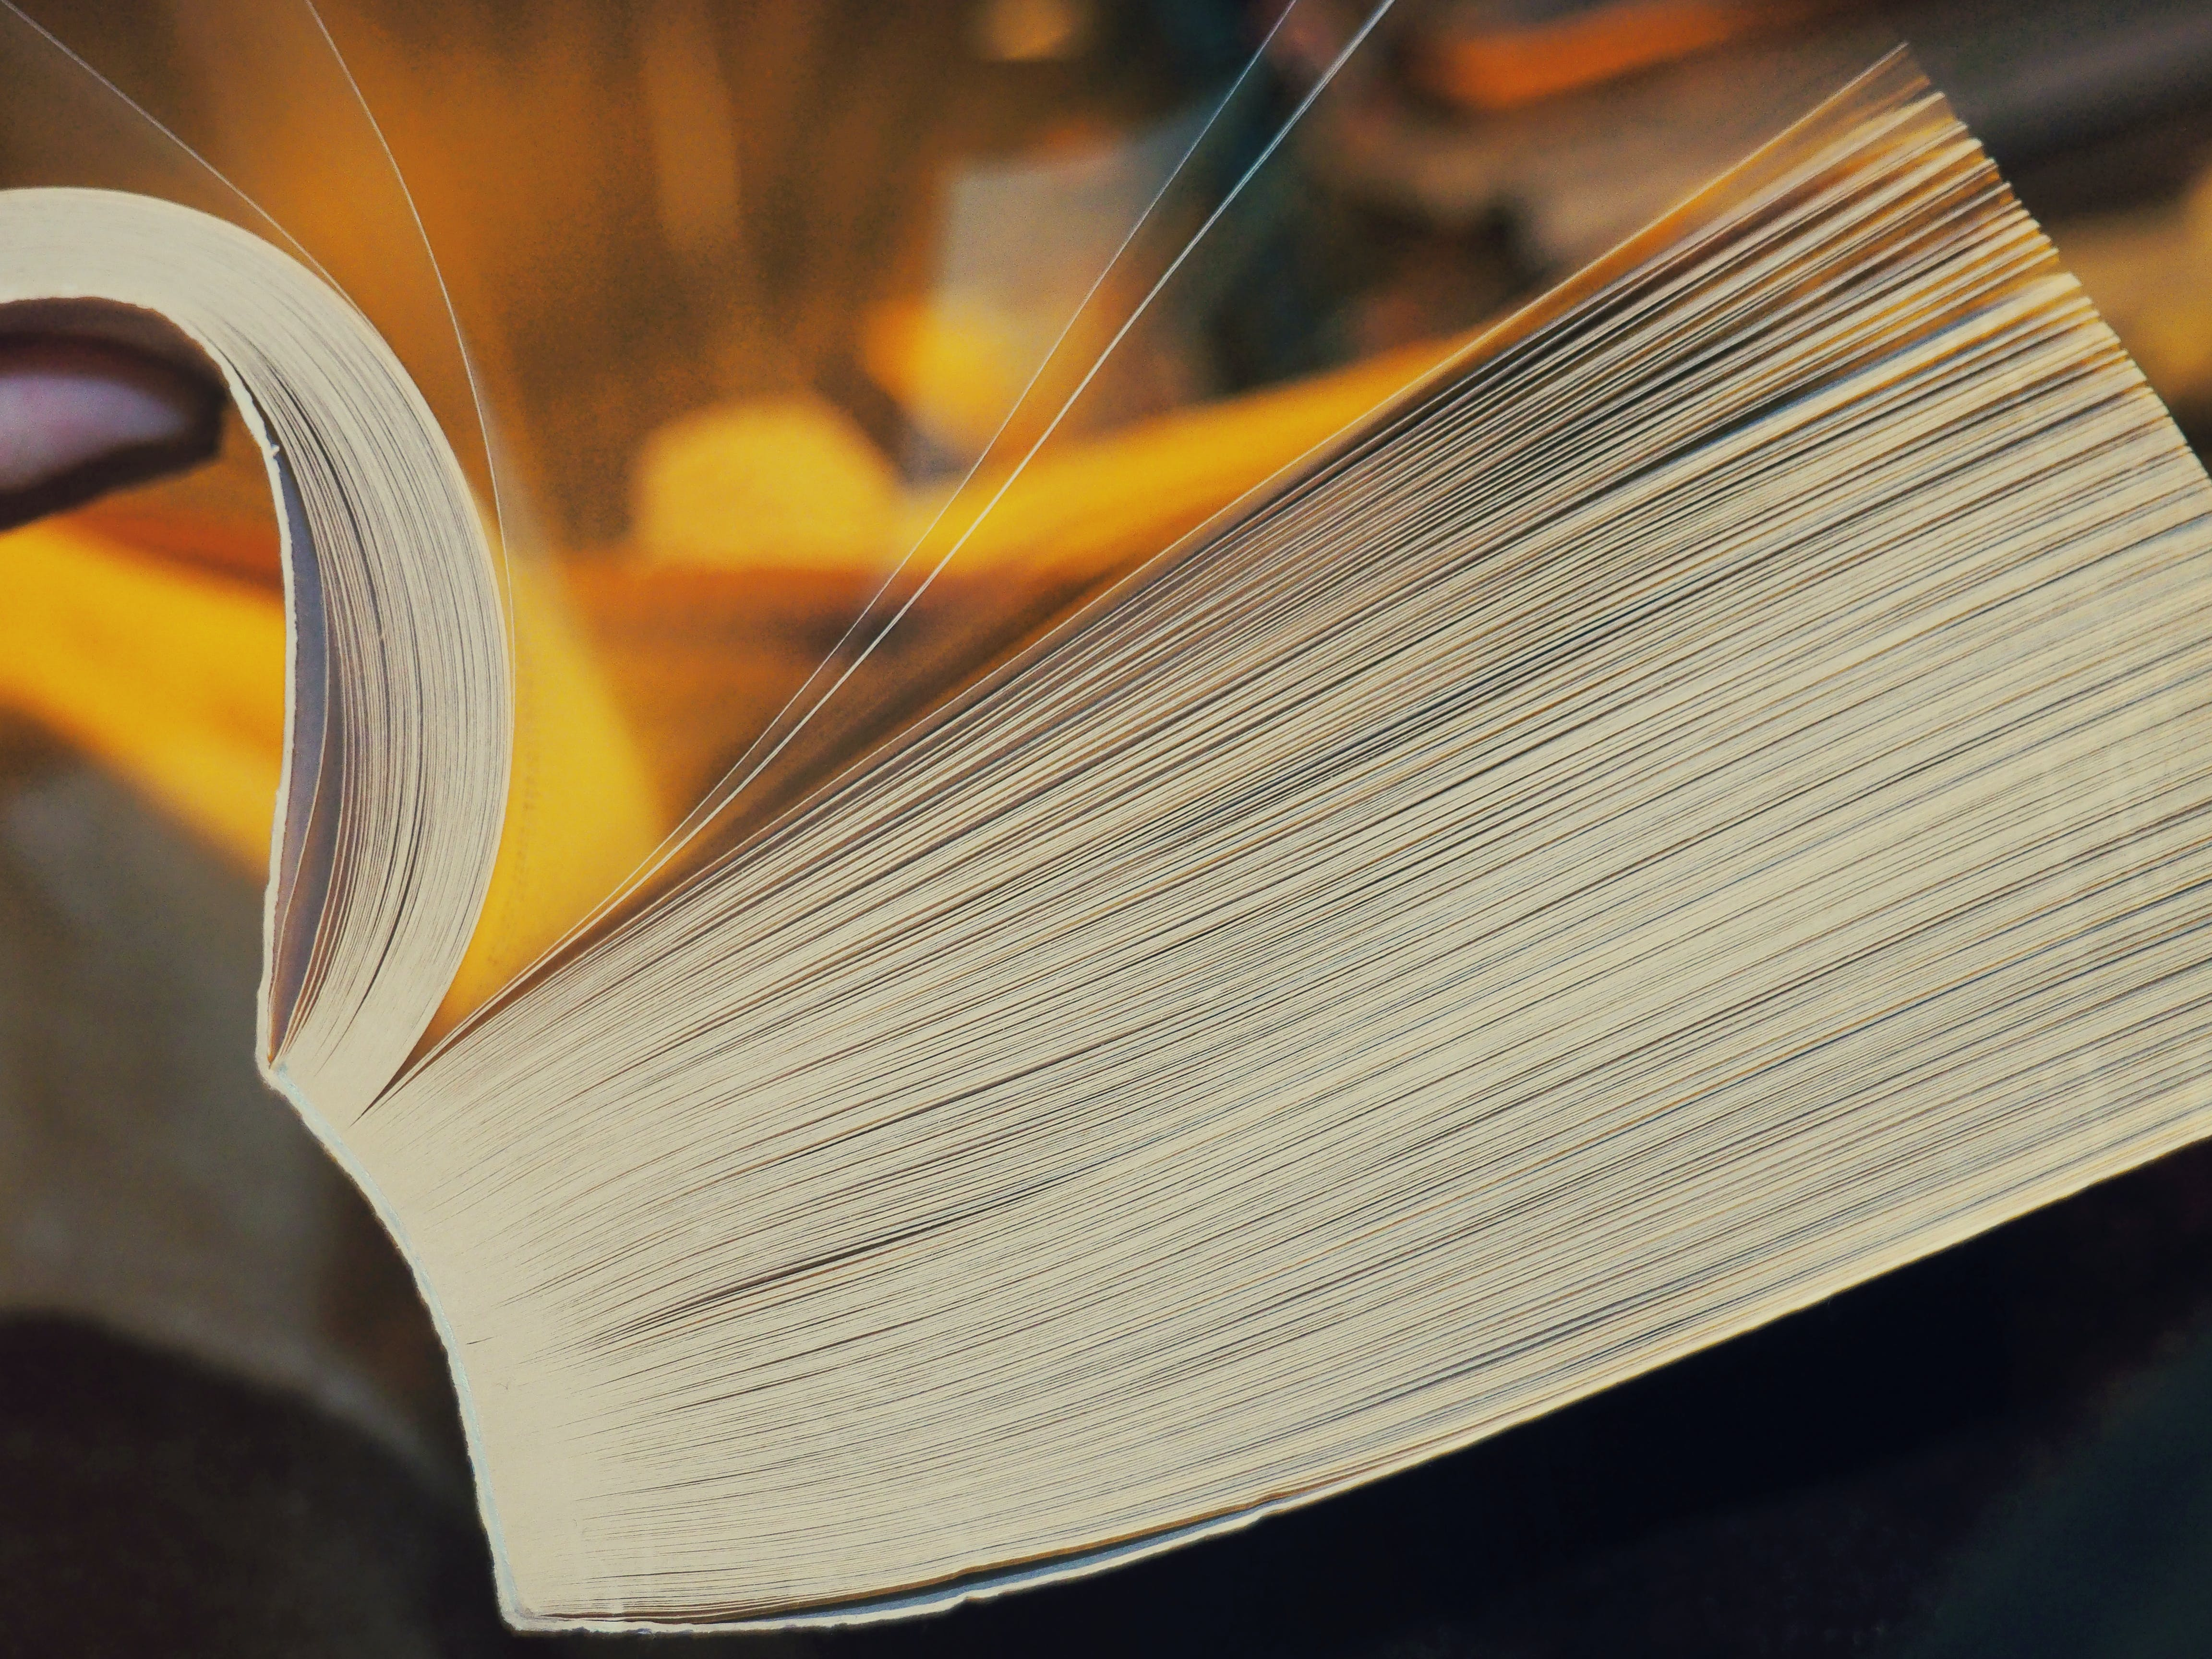 Book on Focus Photop